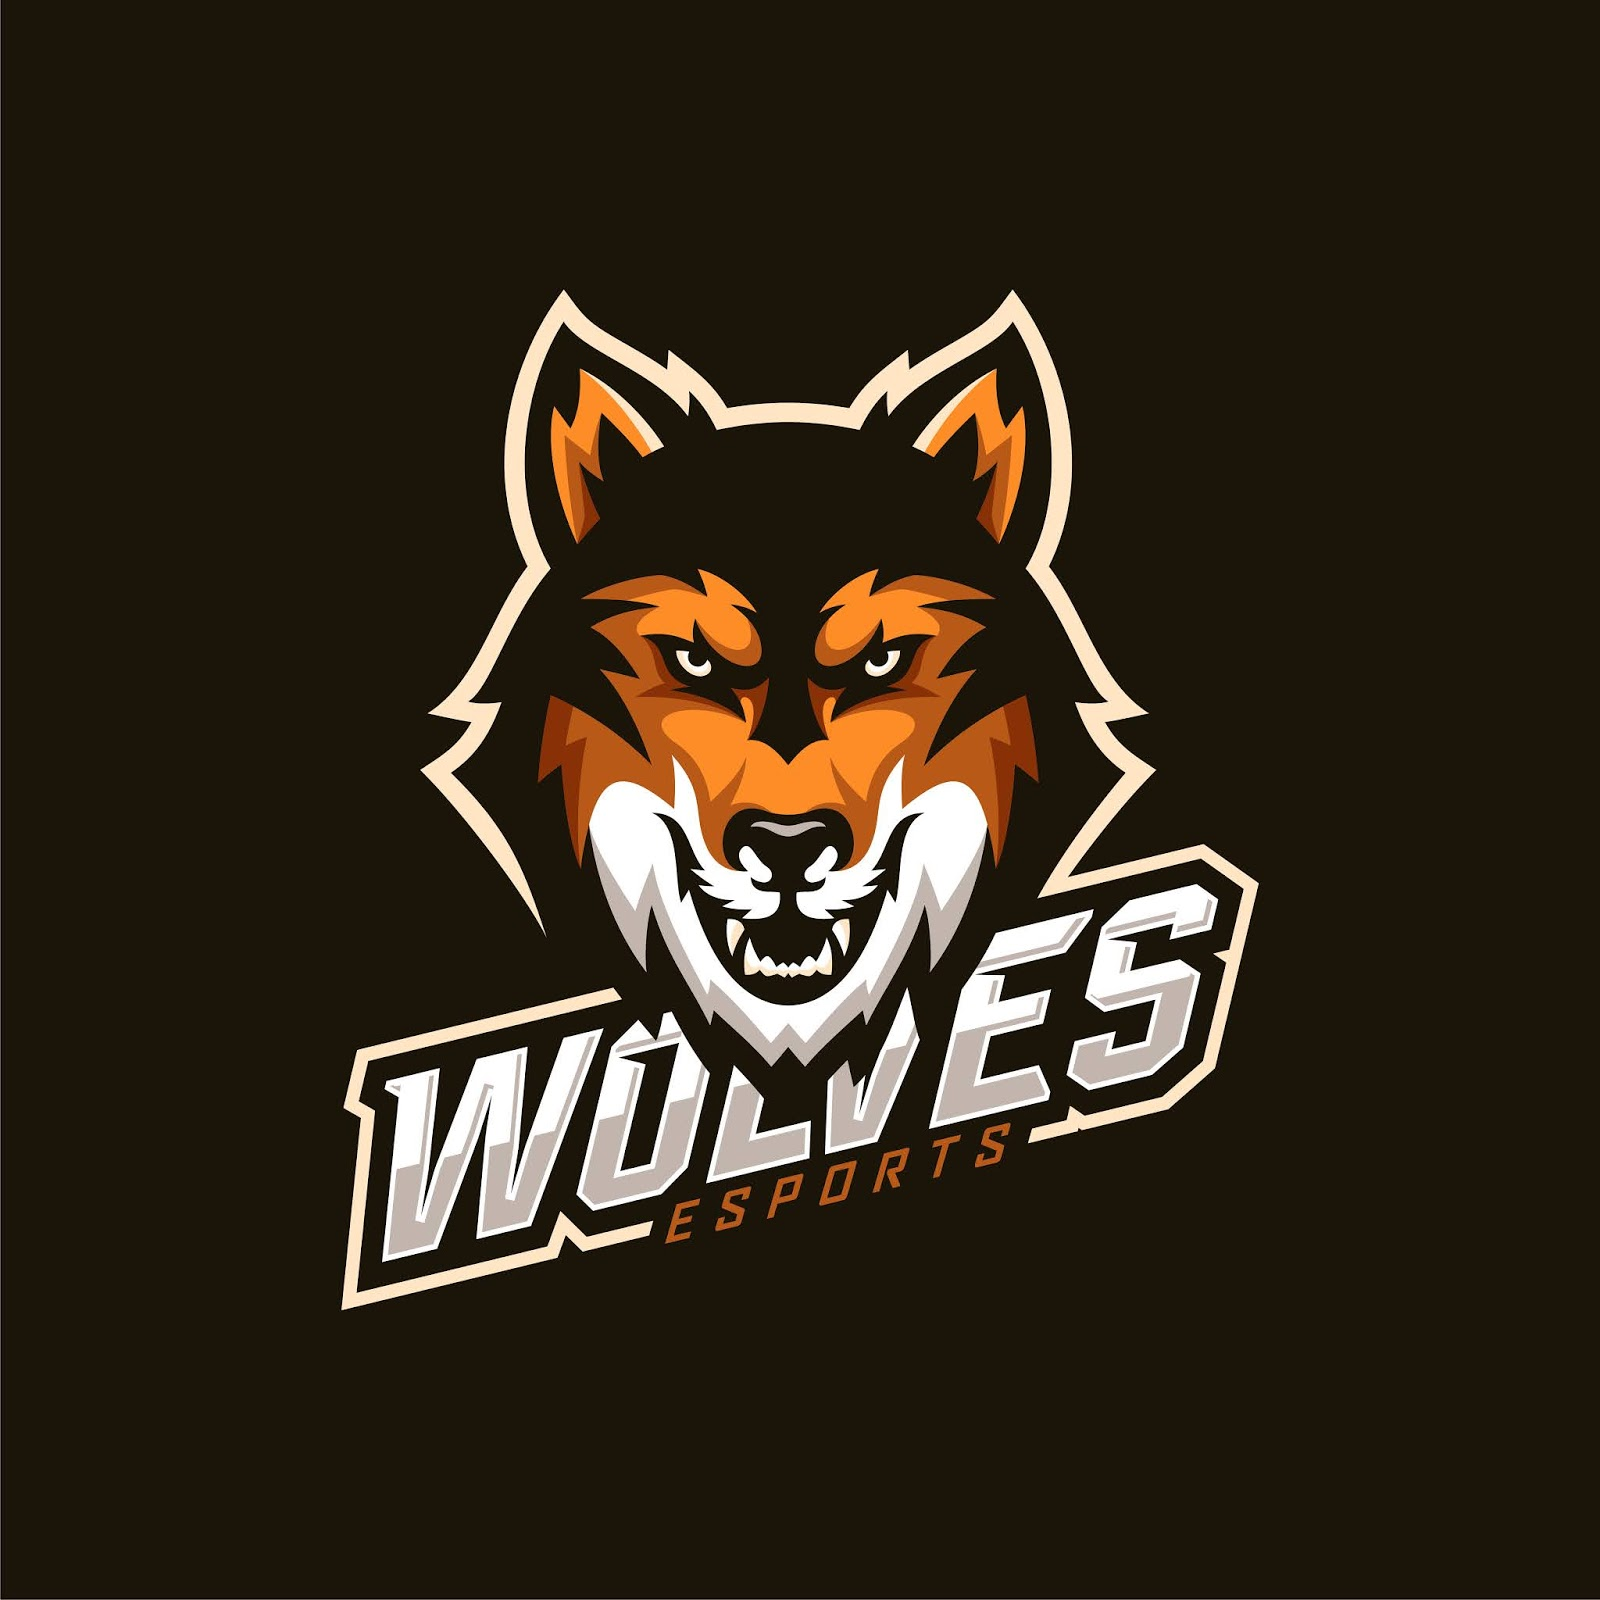 Wolf Head Esport Mascot Logo Free Download Vector CDR, AI, EPS and PNG Formats